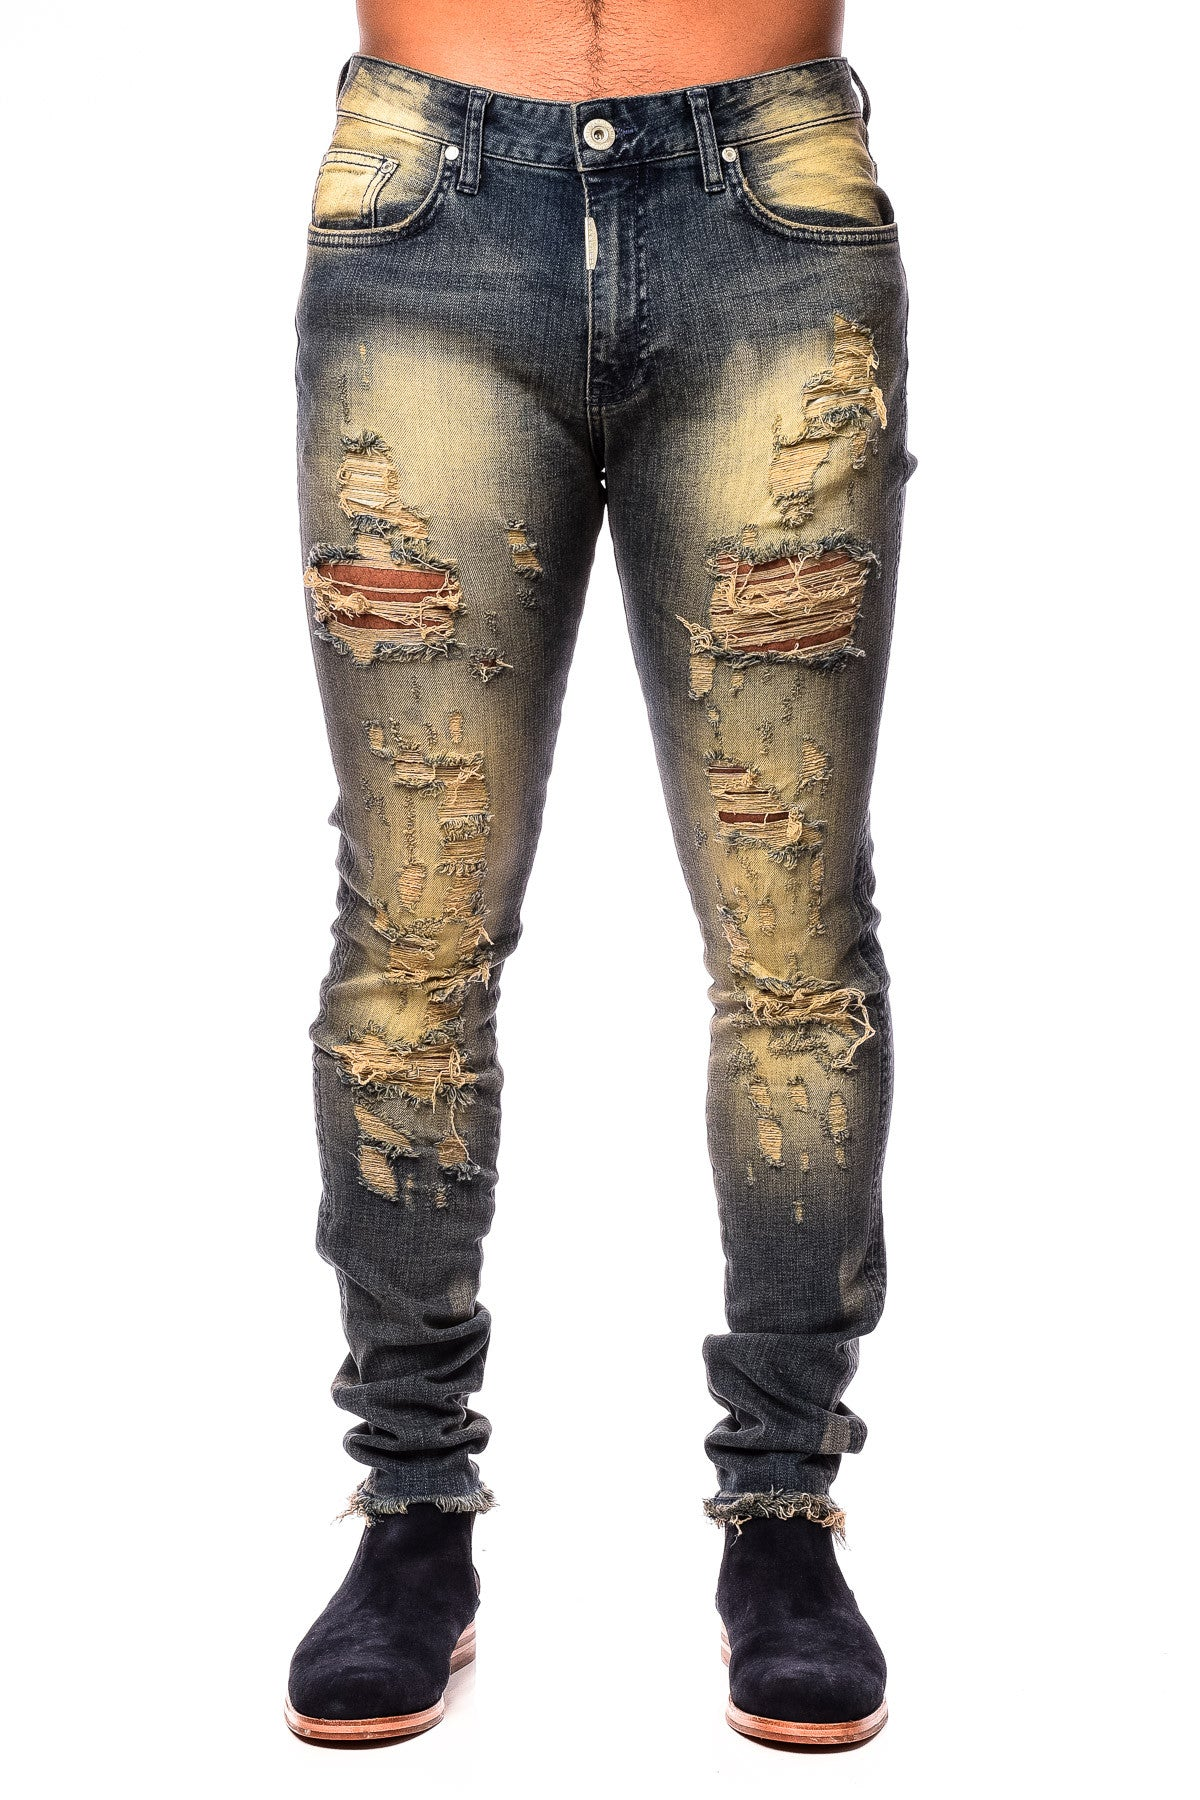 Represent Shredded Destroyer Denim Sand Blast Jean